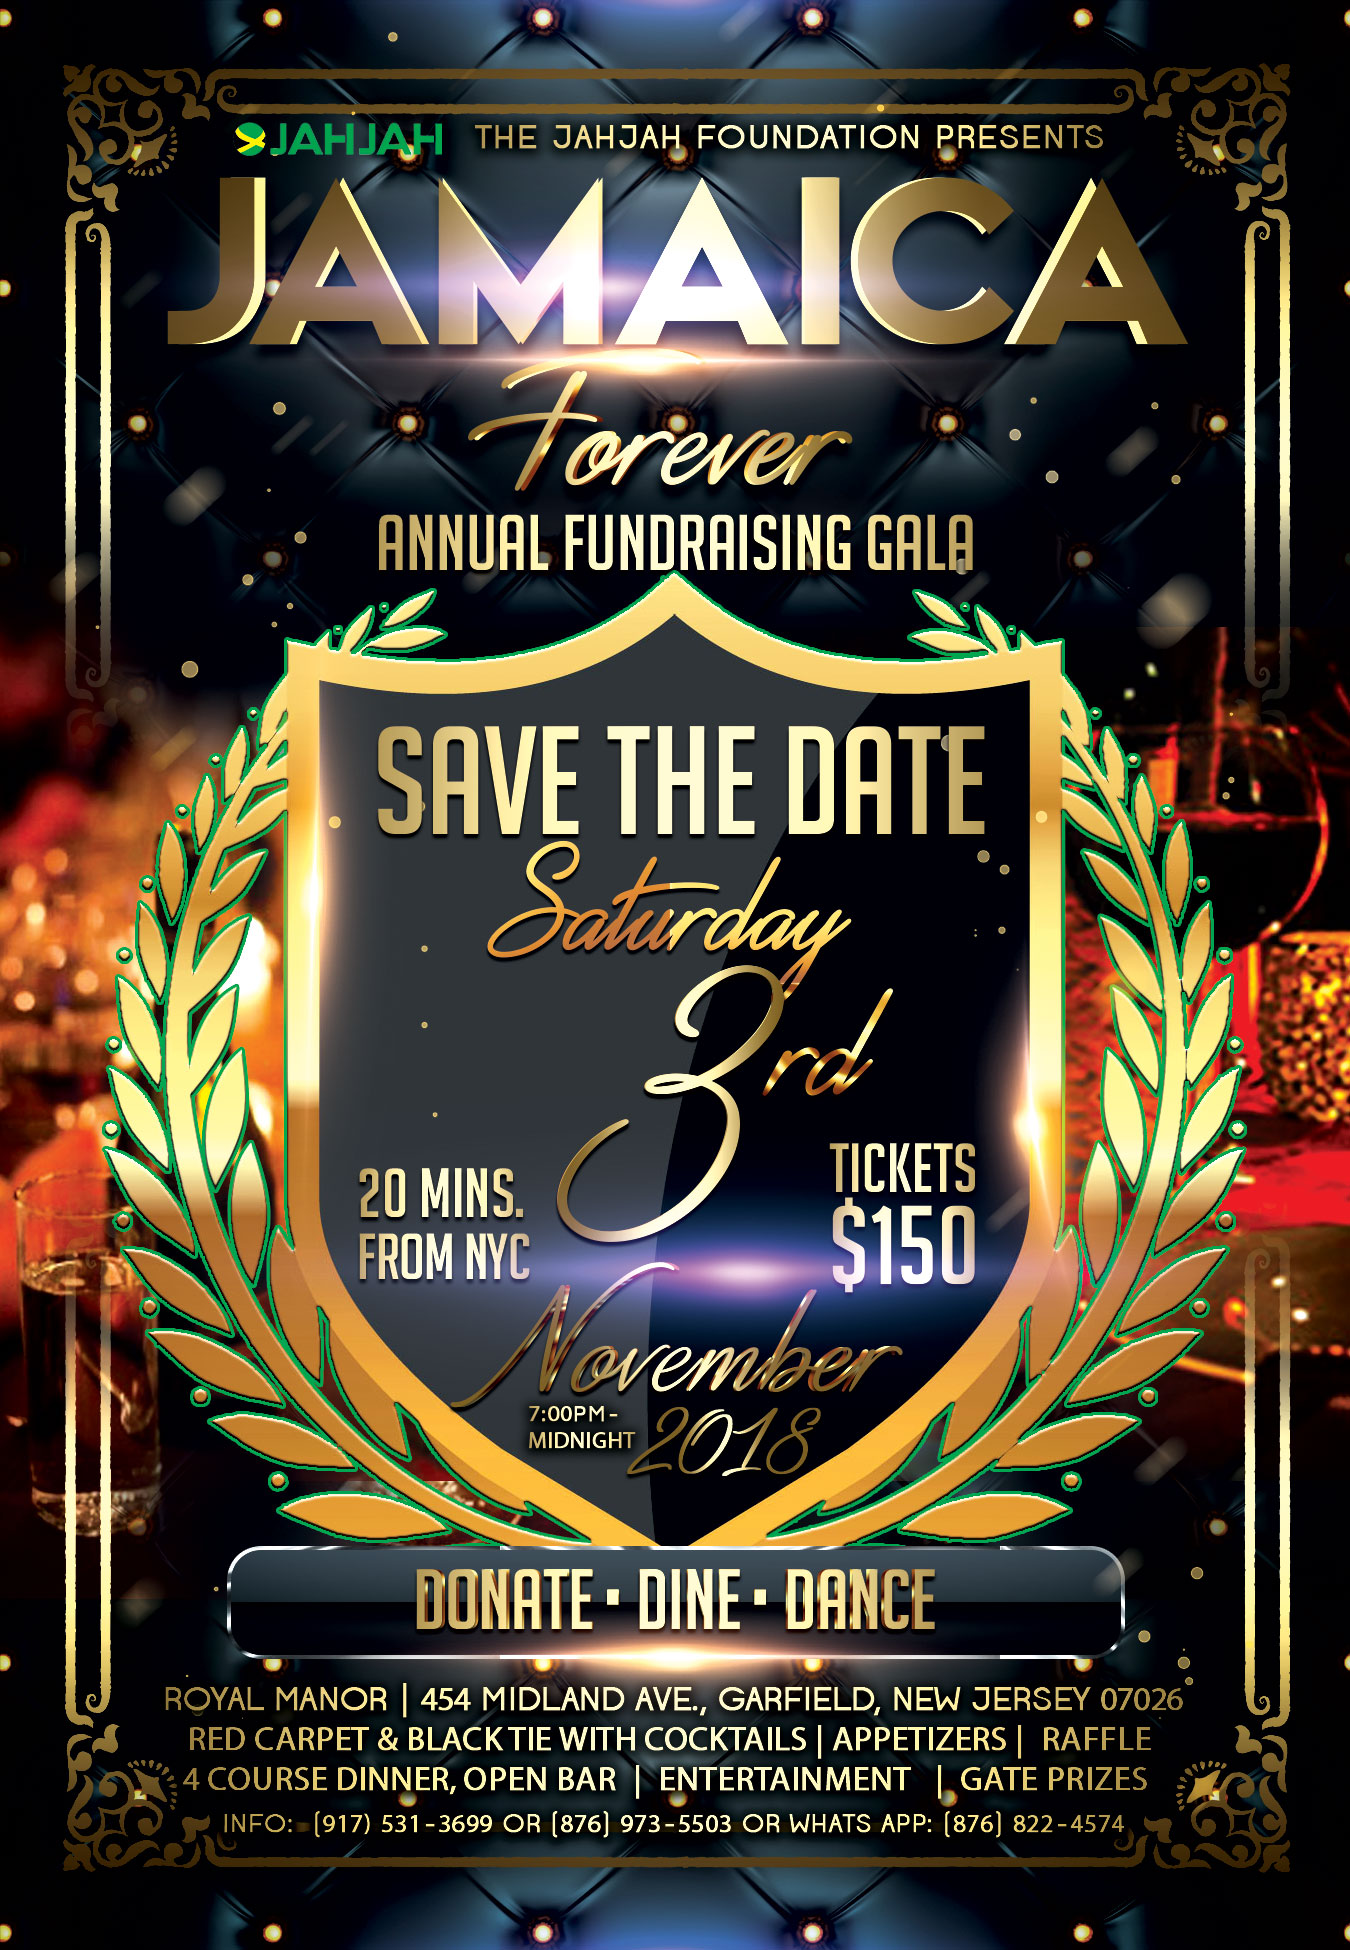 Nov  3, 2018 Black Tie Dinner | Jamaica Forever Welcome to